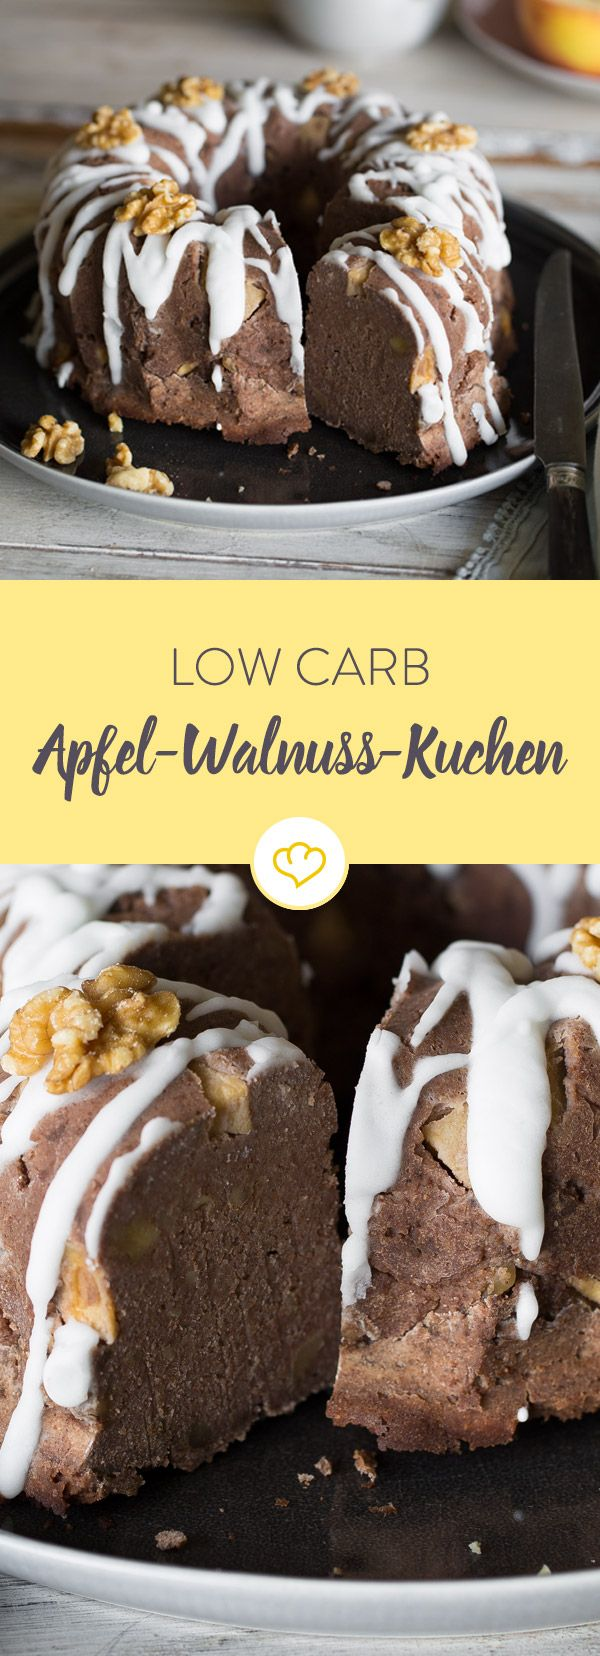 Photo of Low-carb apple and walnut cake